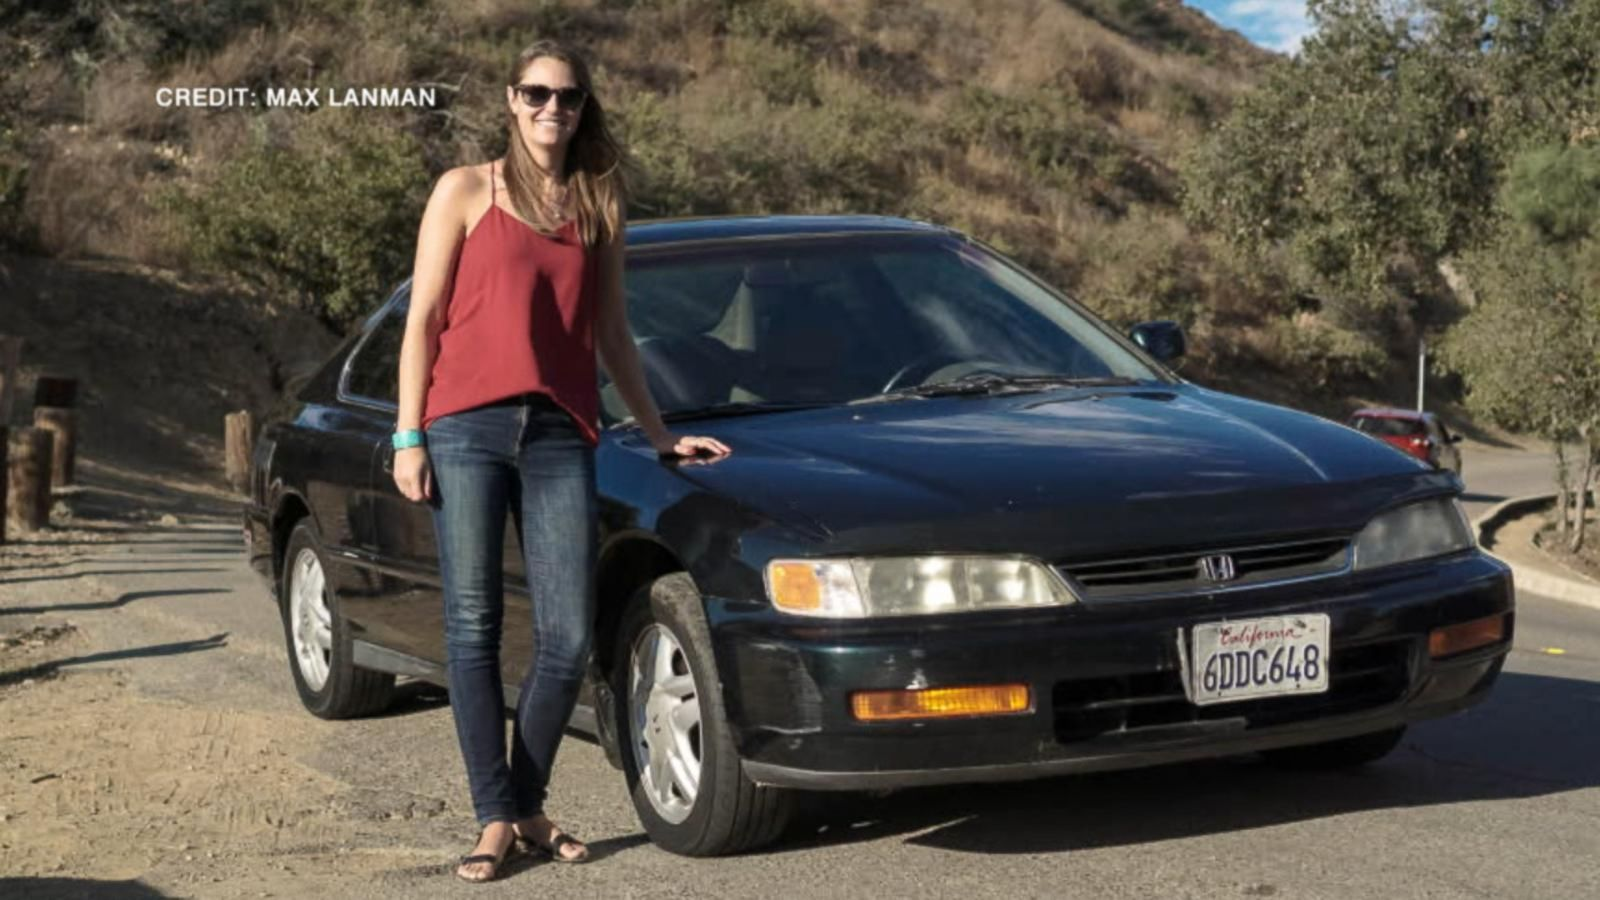 35ae8c8c45 Bids for used car soar after filmmaker s funny ad goes viral - ABC News